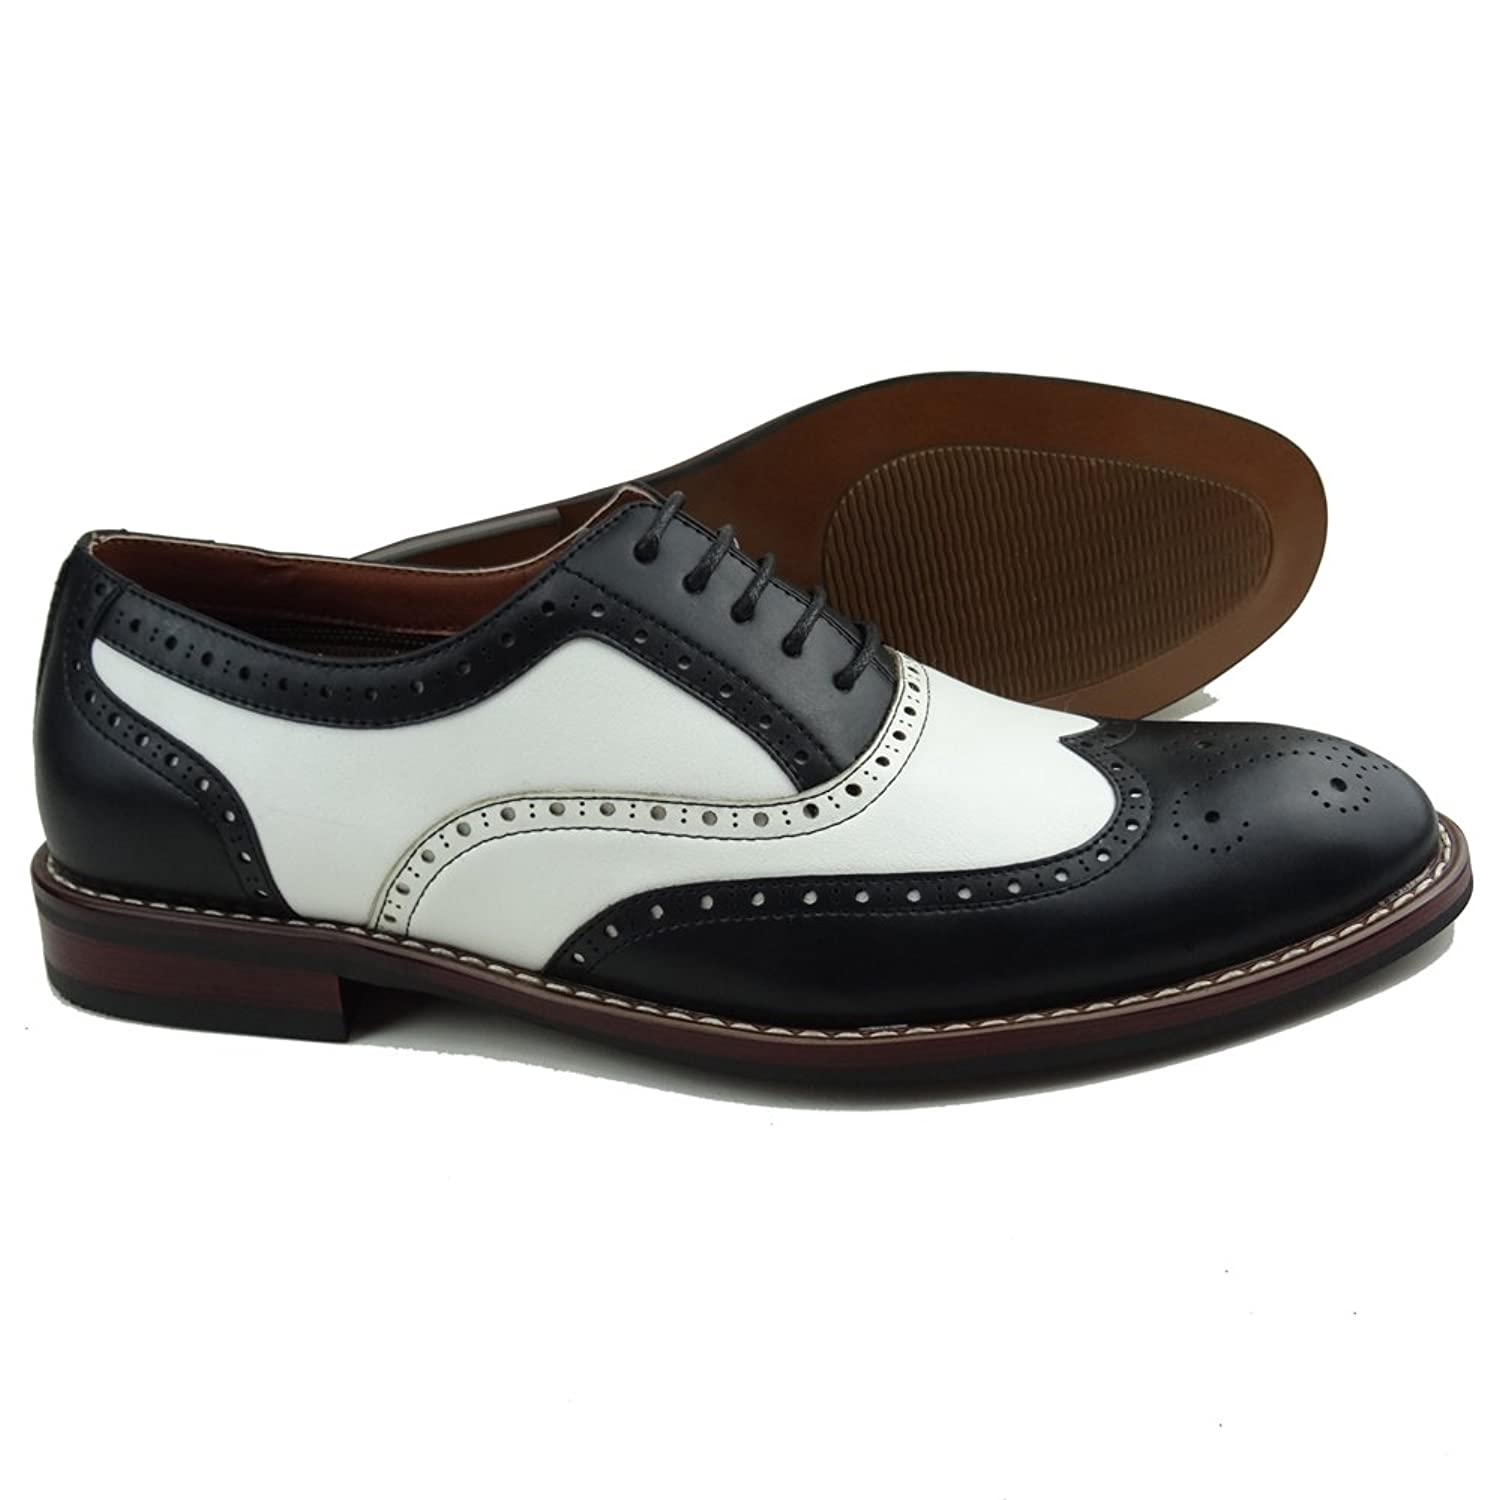 1960s Mens Shoes- Retro, Mod, Vintage Inspired  Mens Black White Lace Up Wing Tip Perforated Oxford Dress Shoes $34.99 AT vintagedancer.com